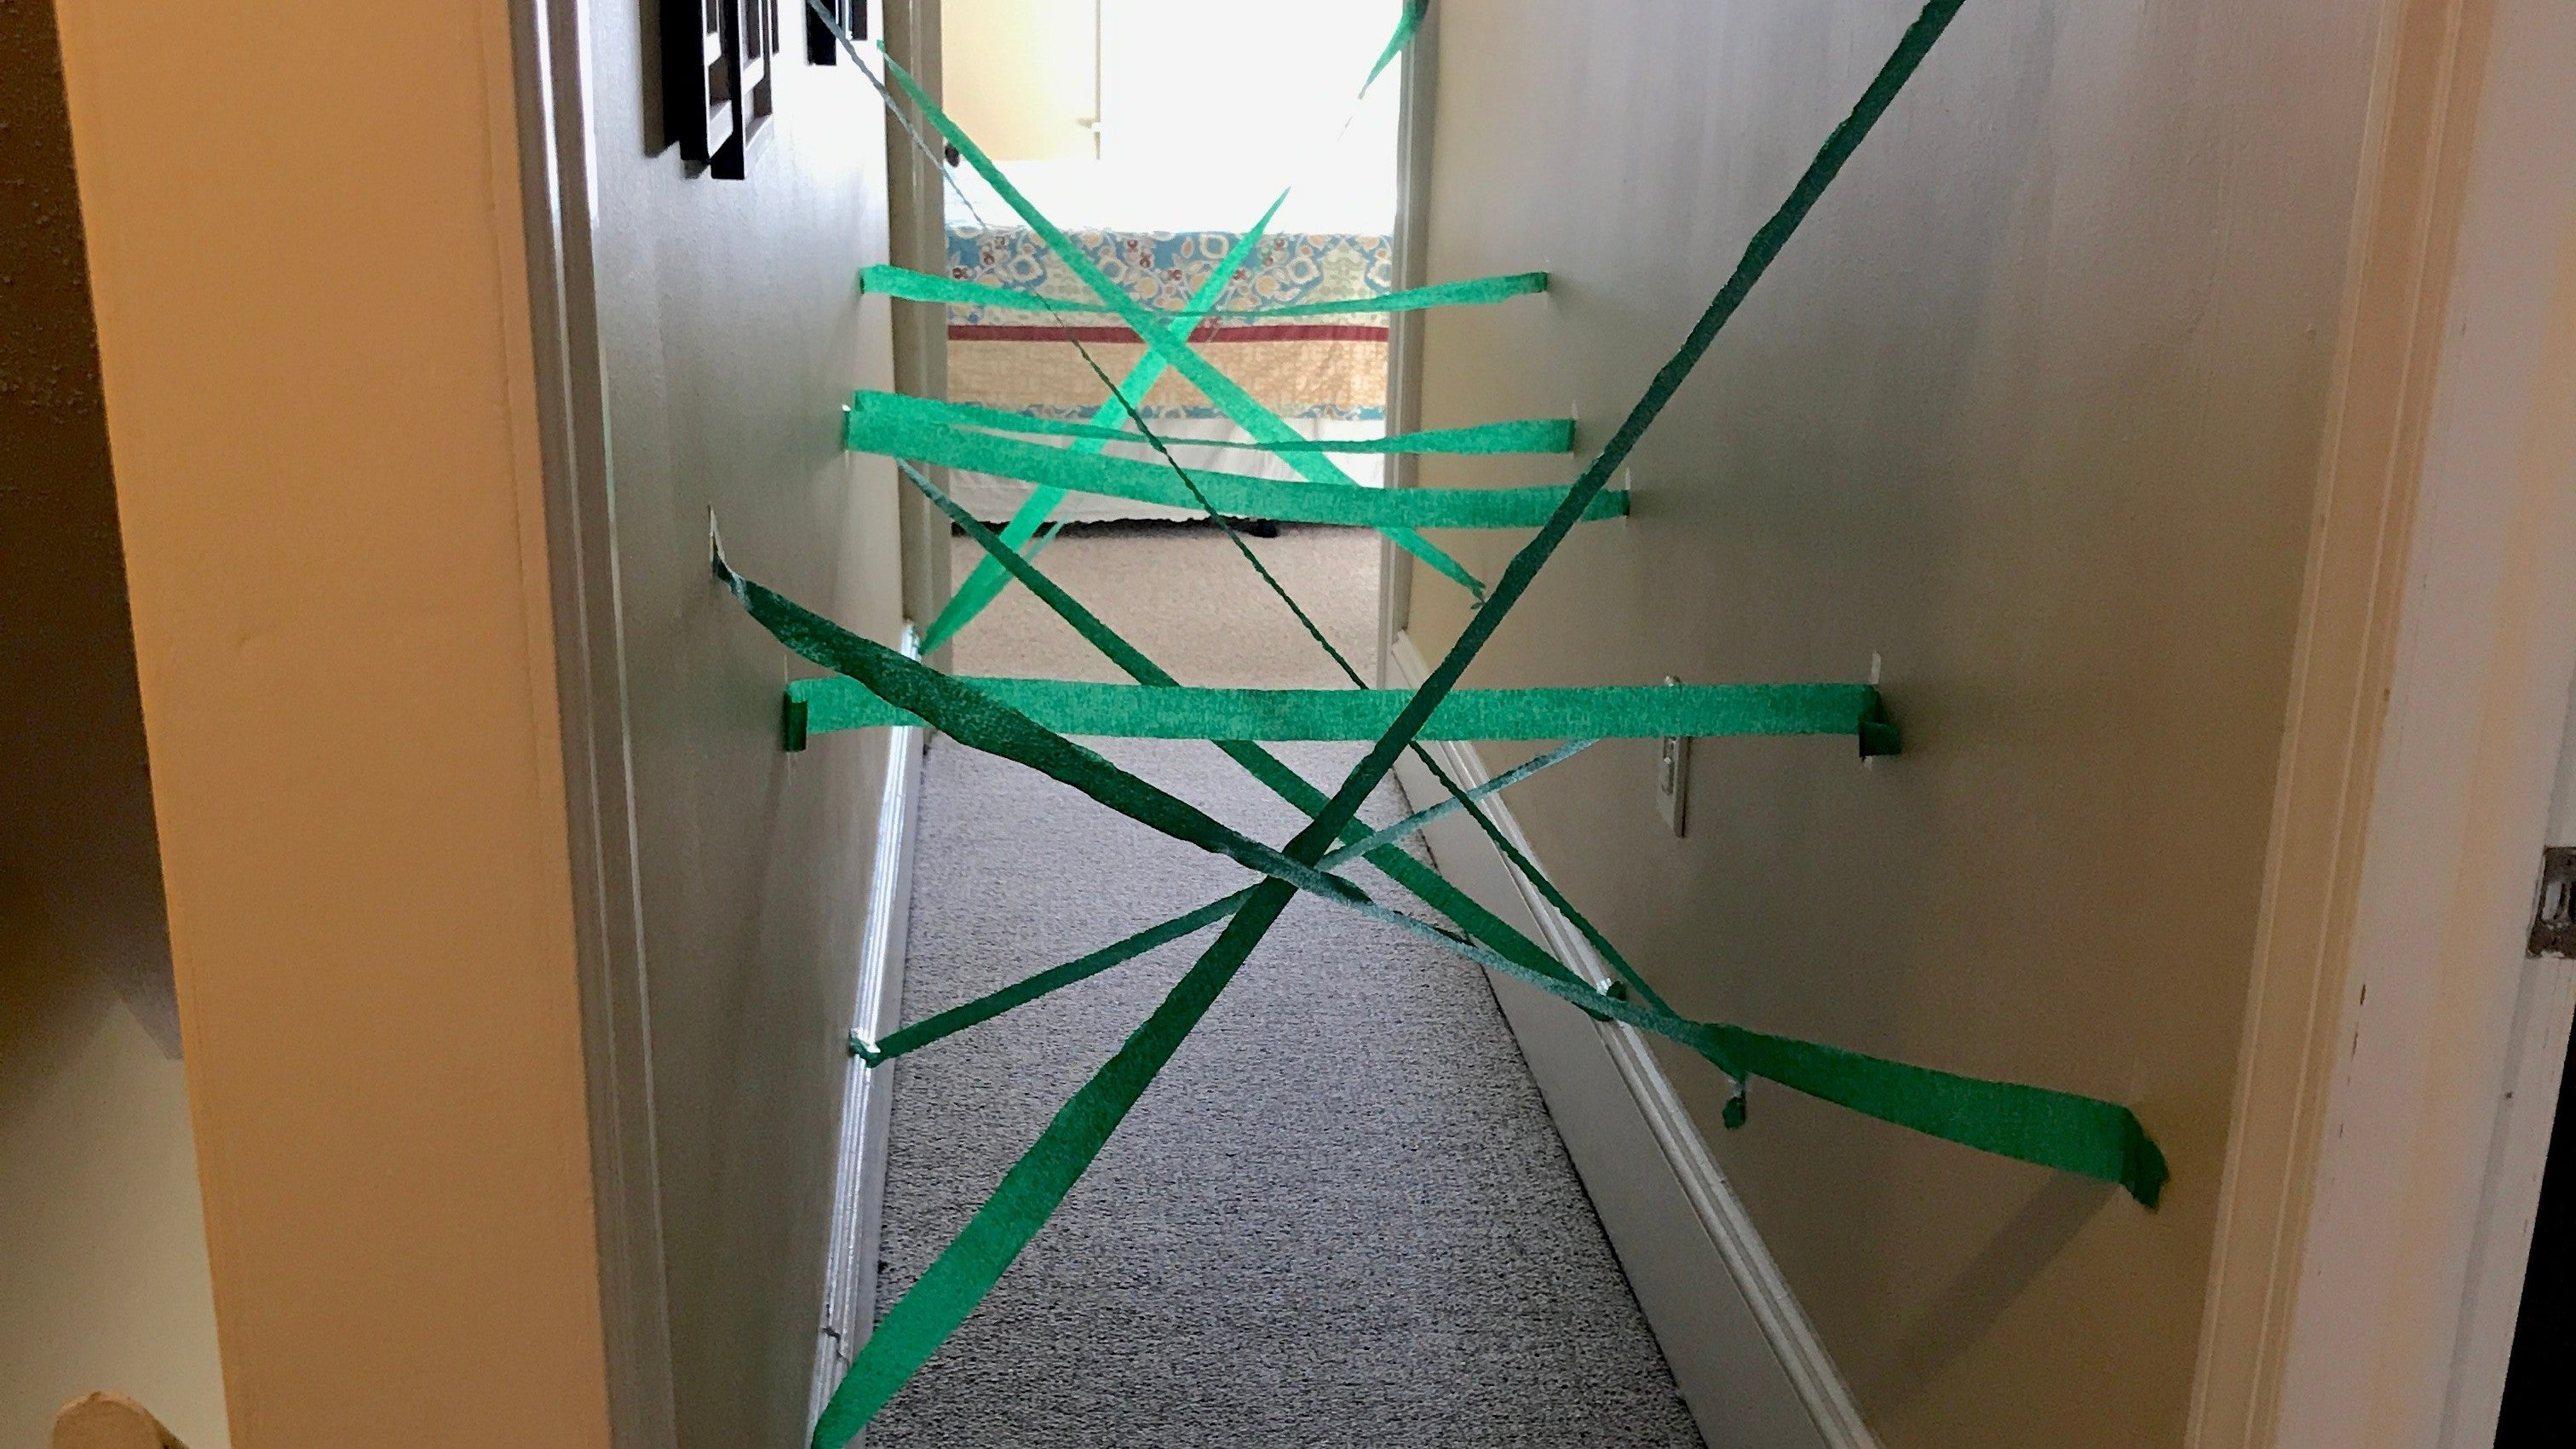 How To Make A DIY 'Laser' Maze In Your Home